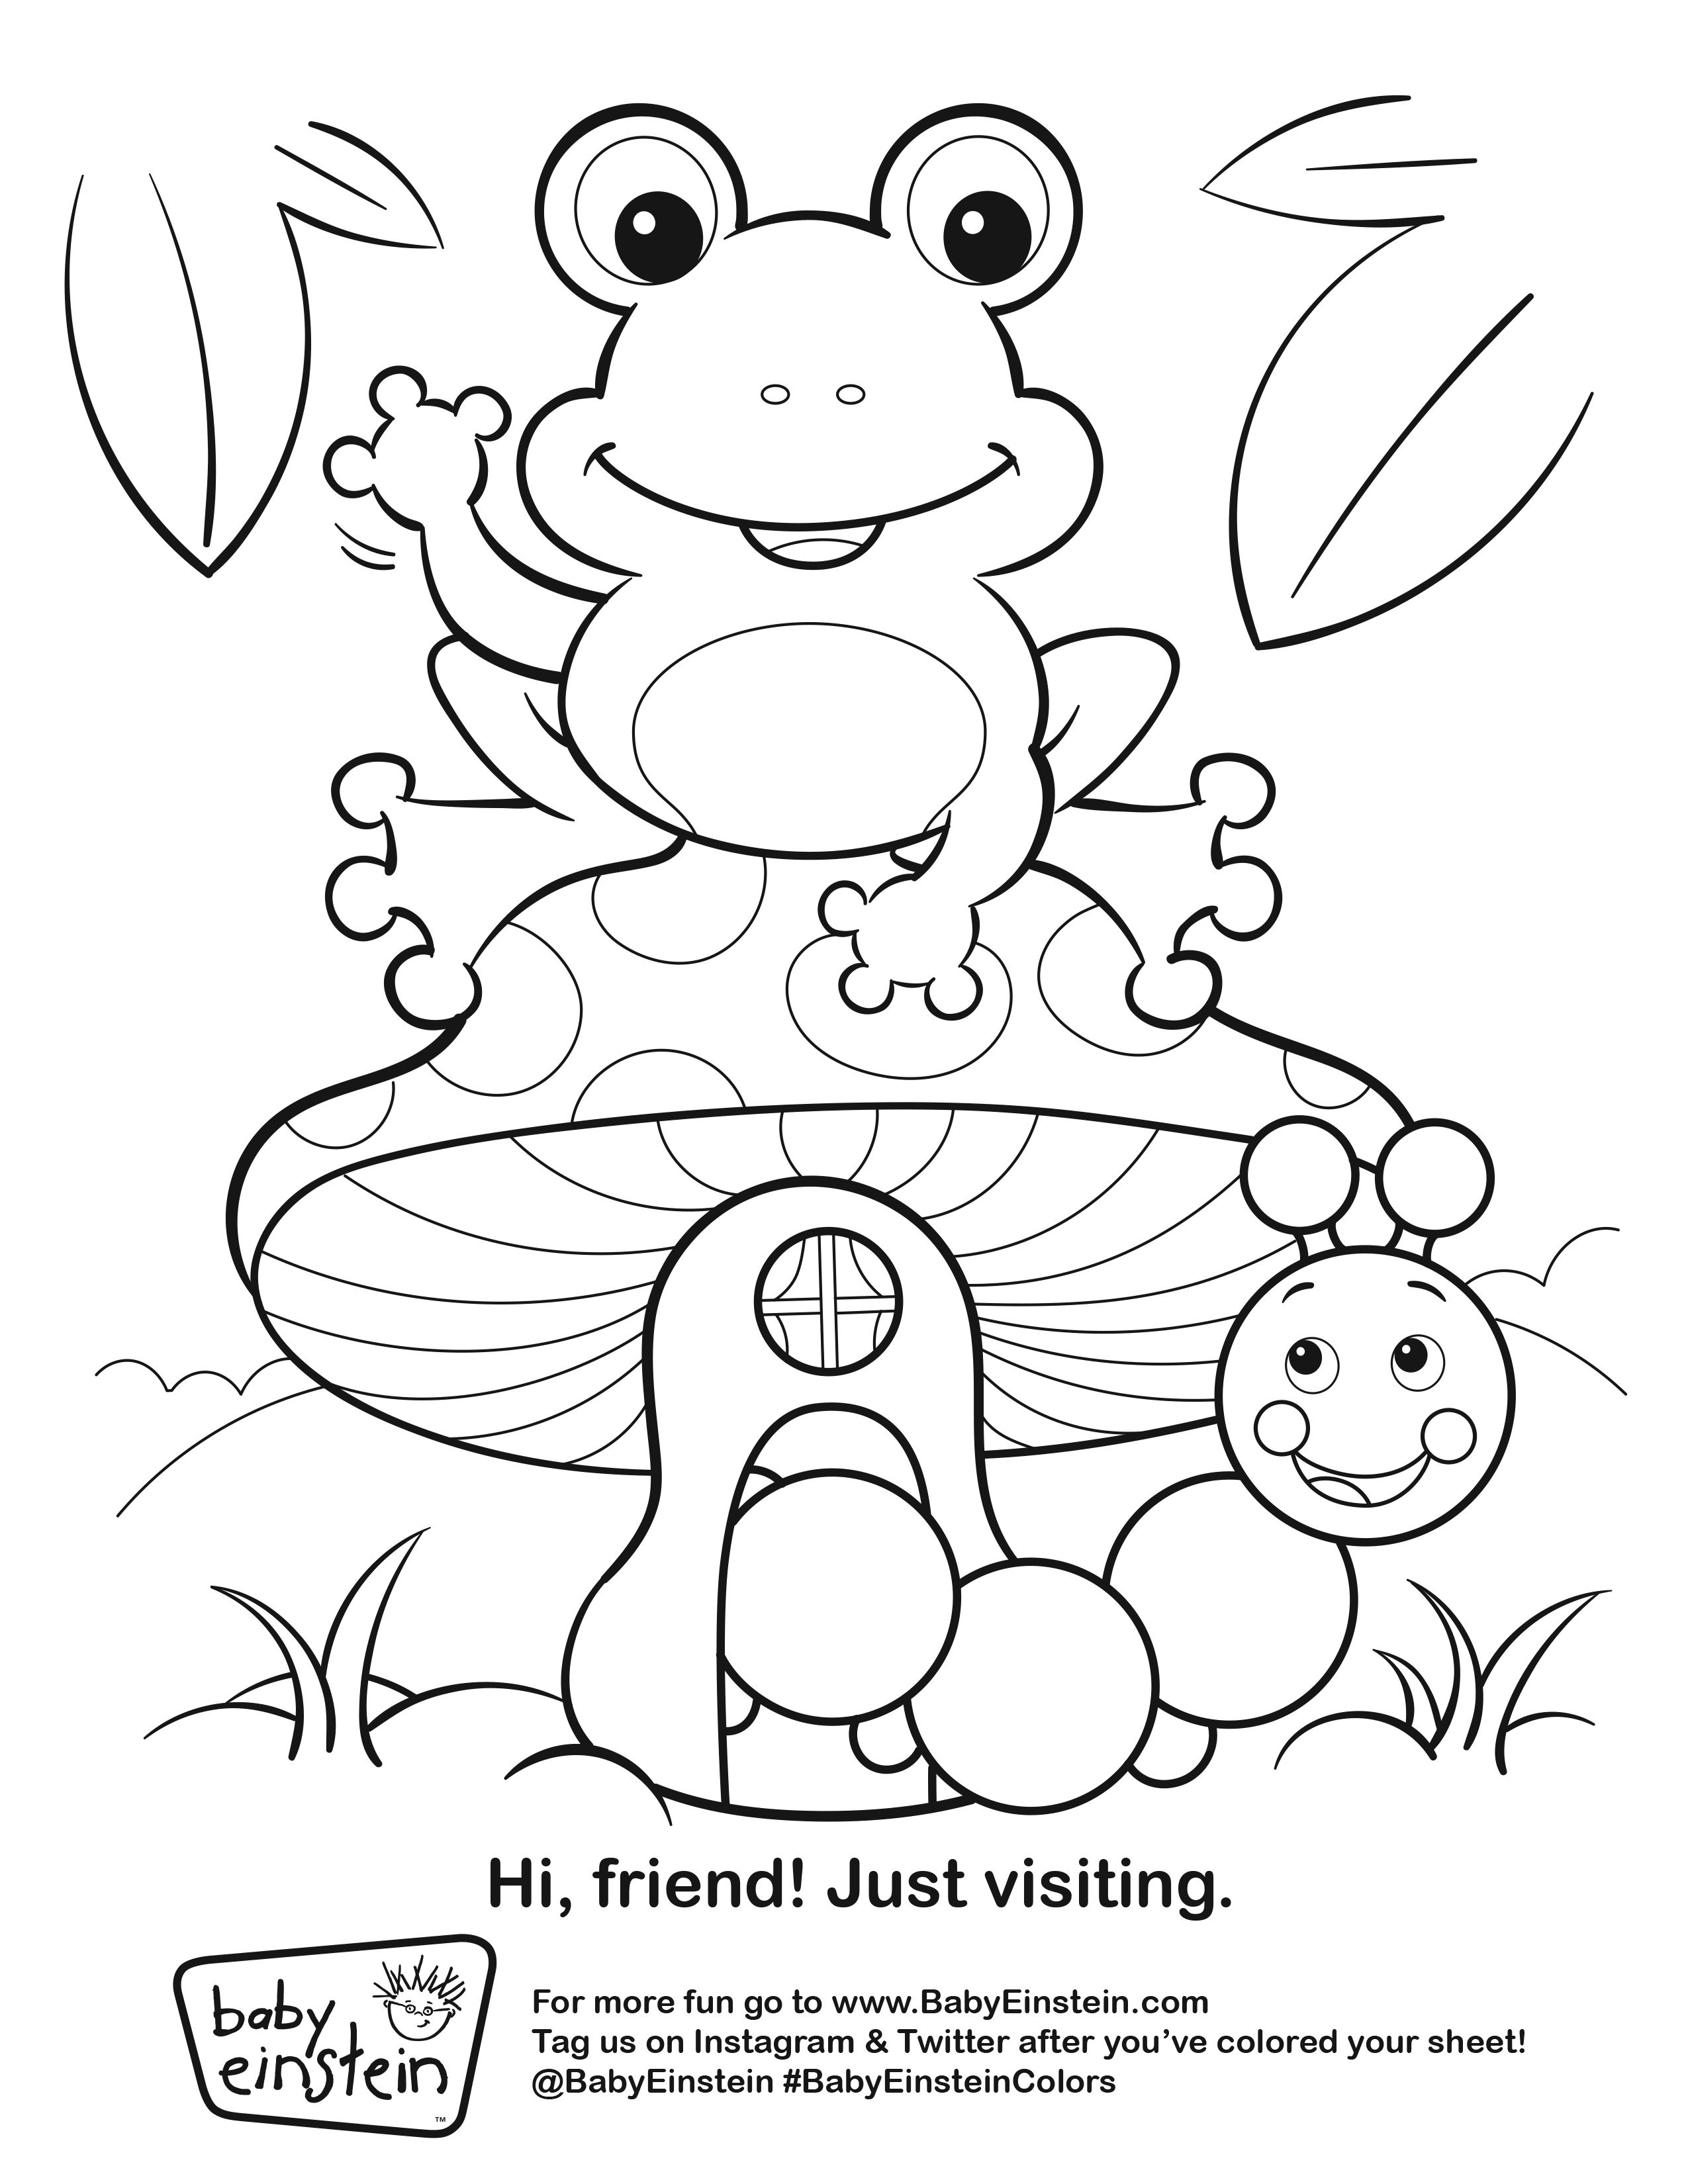 Summer Shouldn T Be Dull Entertain Your Kiddos With This Baby Einstein Coloring Sheet Babyeinstein Baby Einstein Free Baby Stuff Coloring Pages